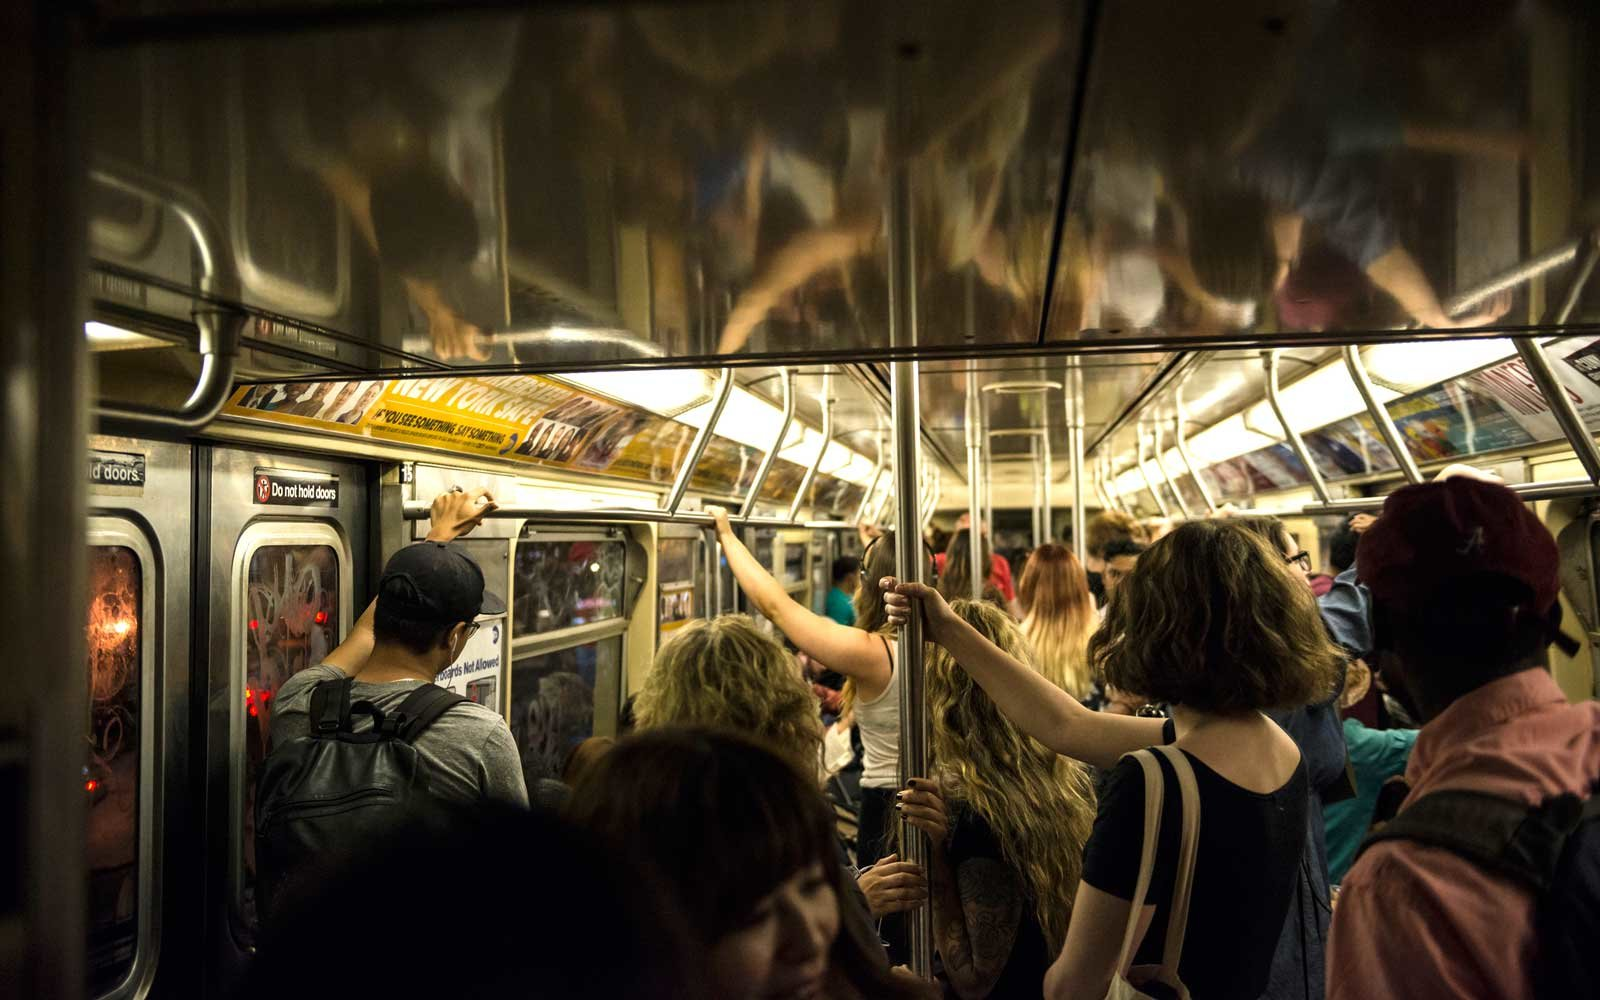 People ride a crowded subway train in New York City.